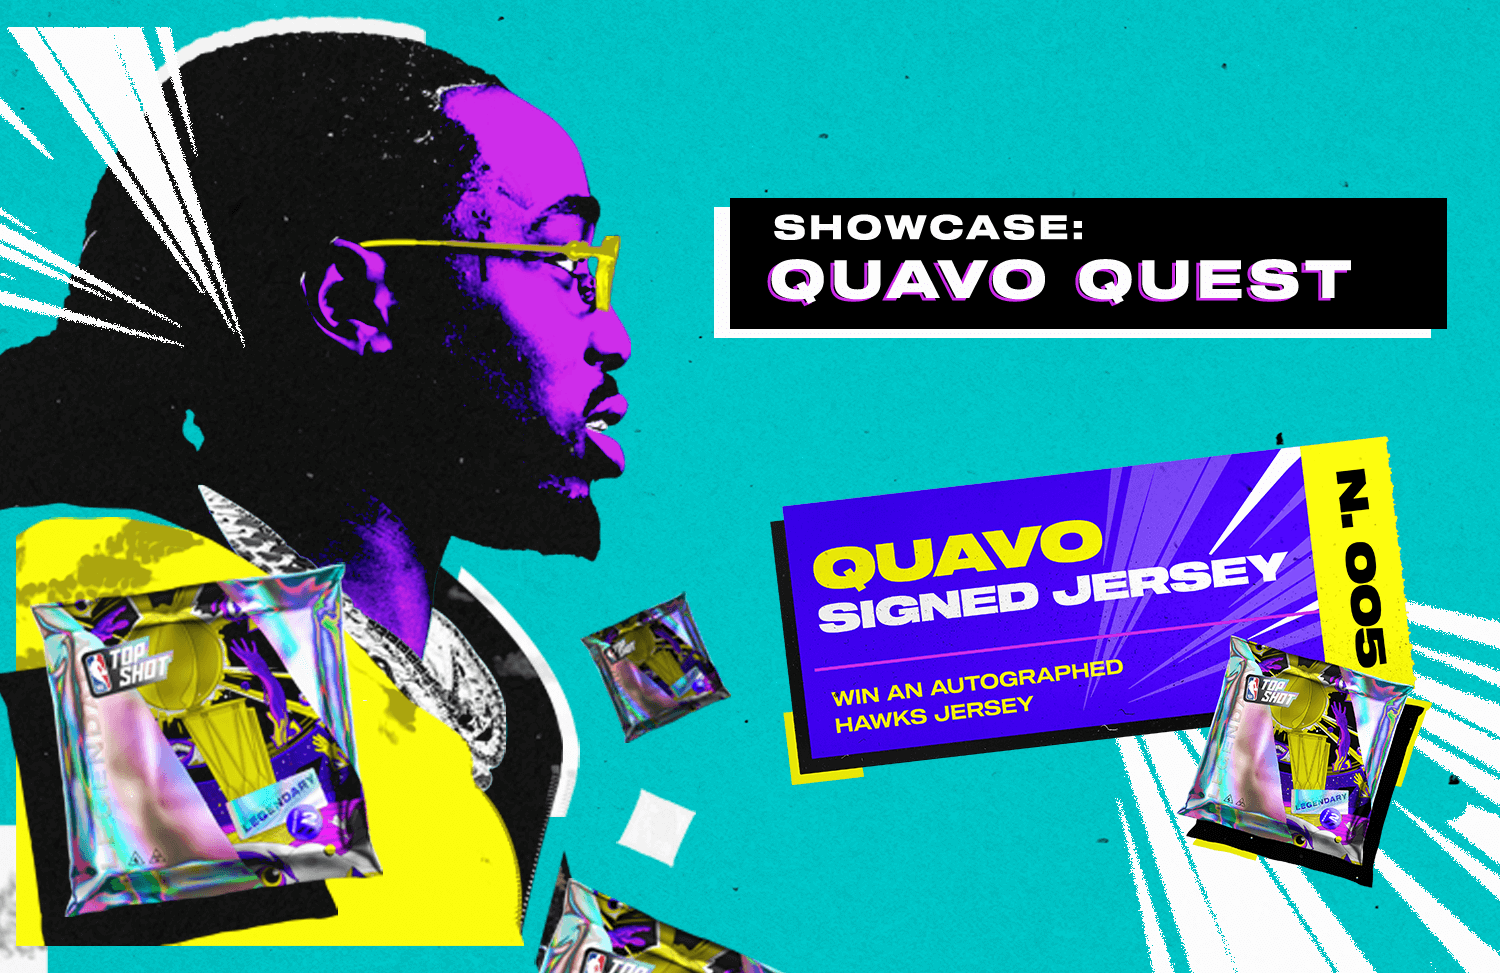 We've partnered with Quavo for a legendary giveaway leading into a legendary week.